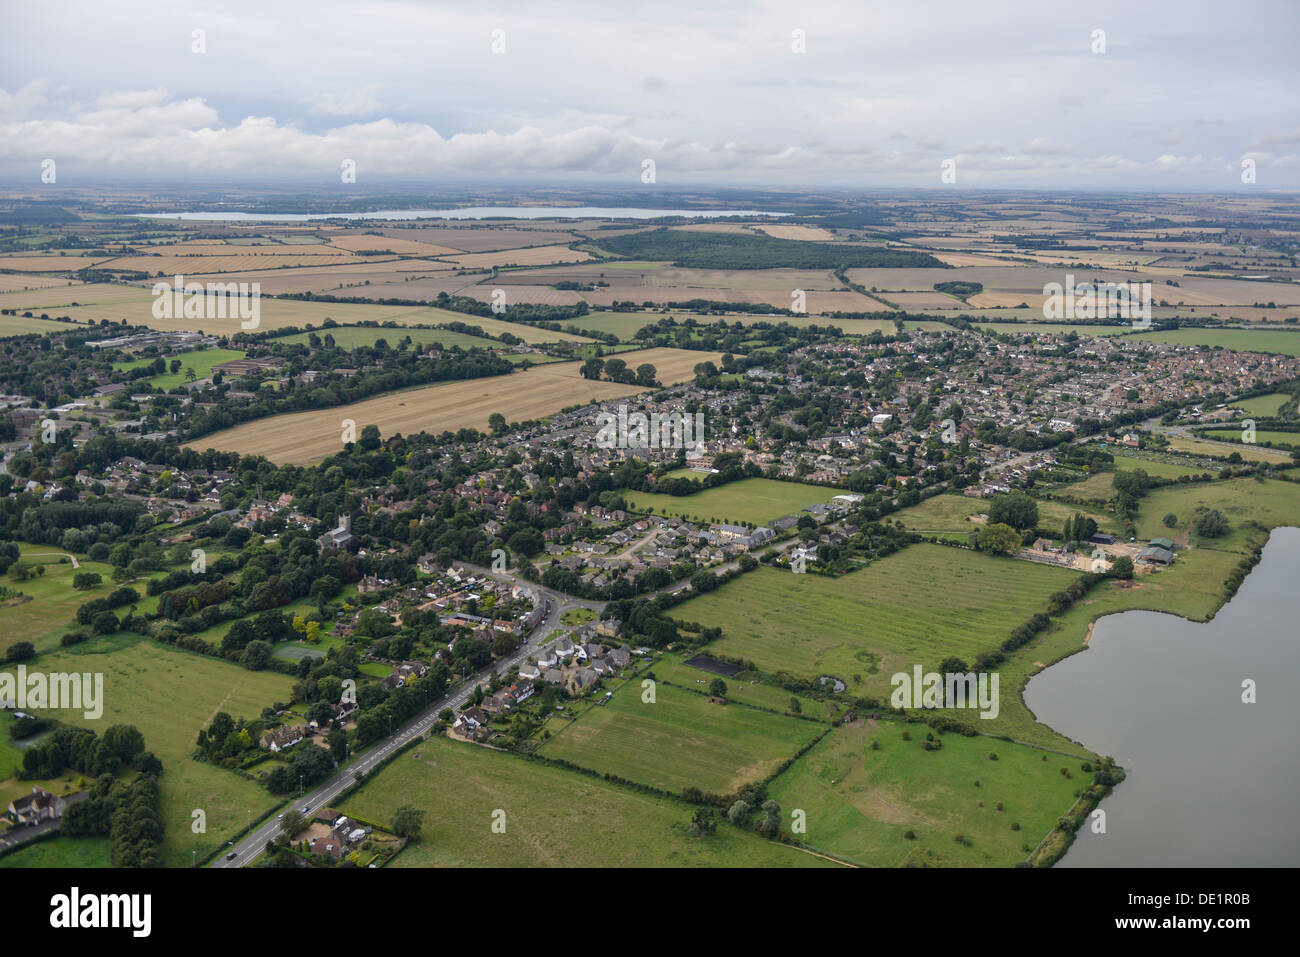 Aerial photograph of Brampton in Cambridgeshire - Stock Image